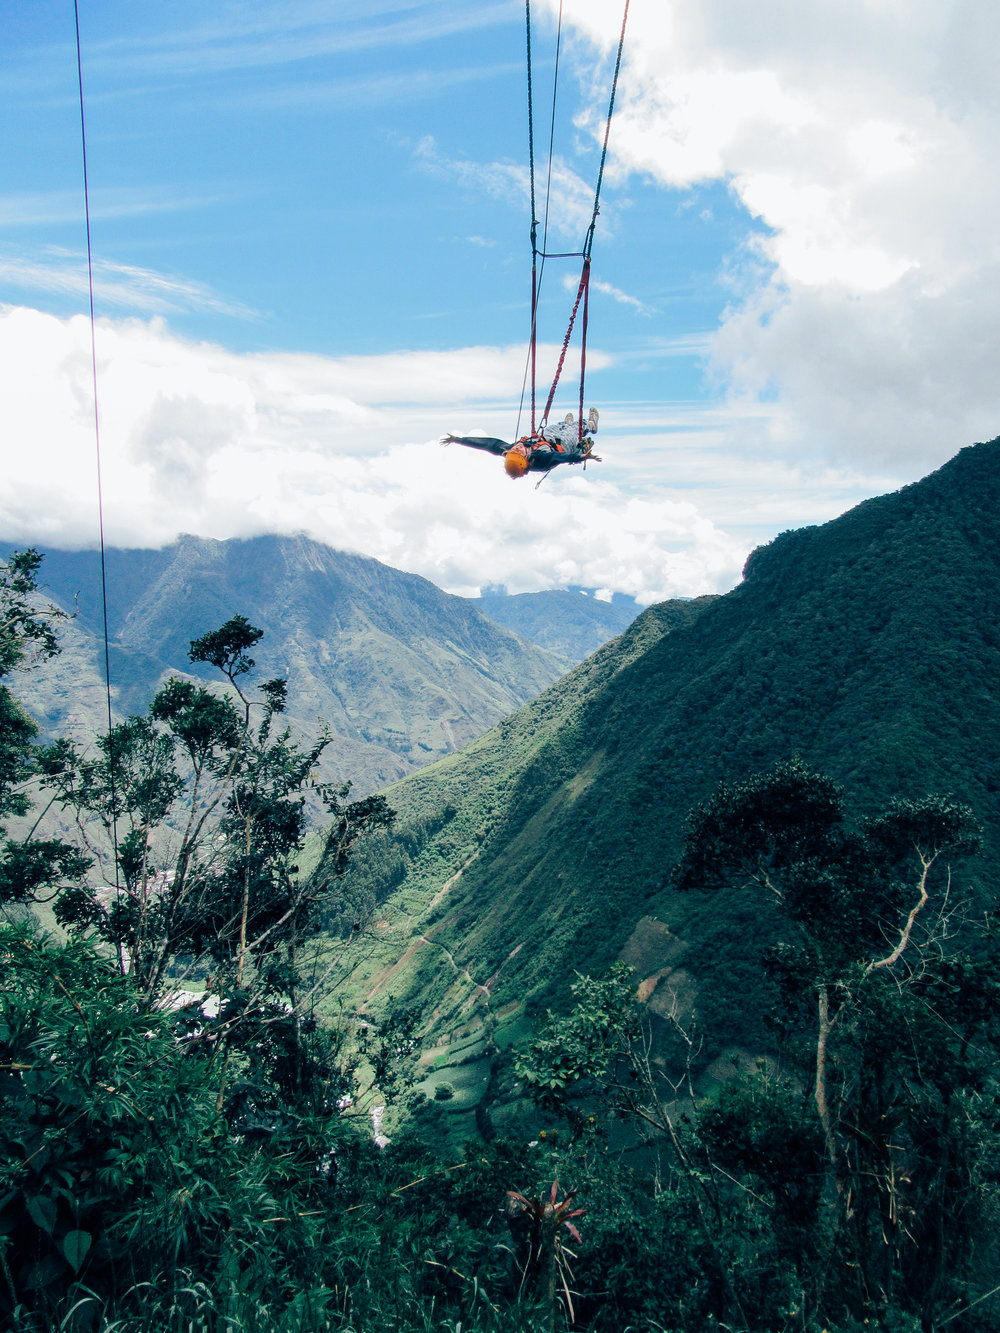 Things to do when you get out there and explore Ecuador!